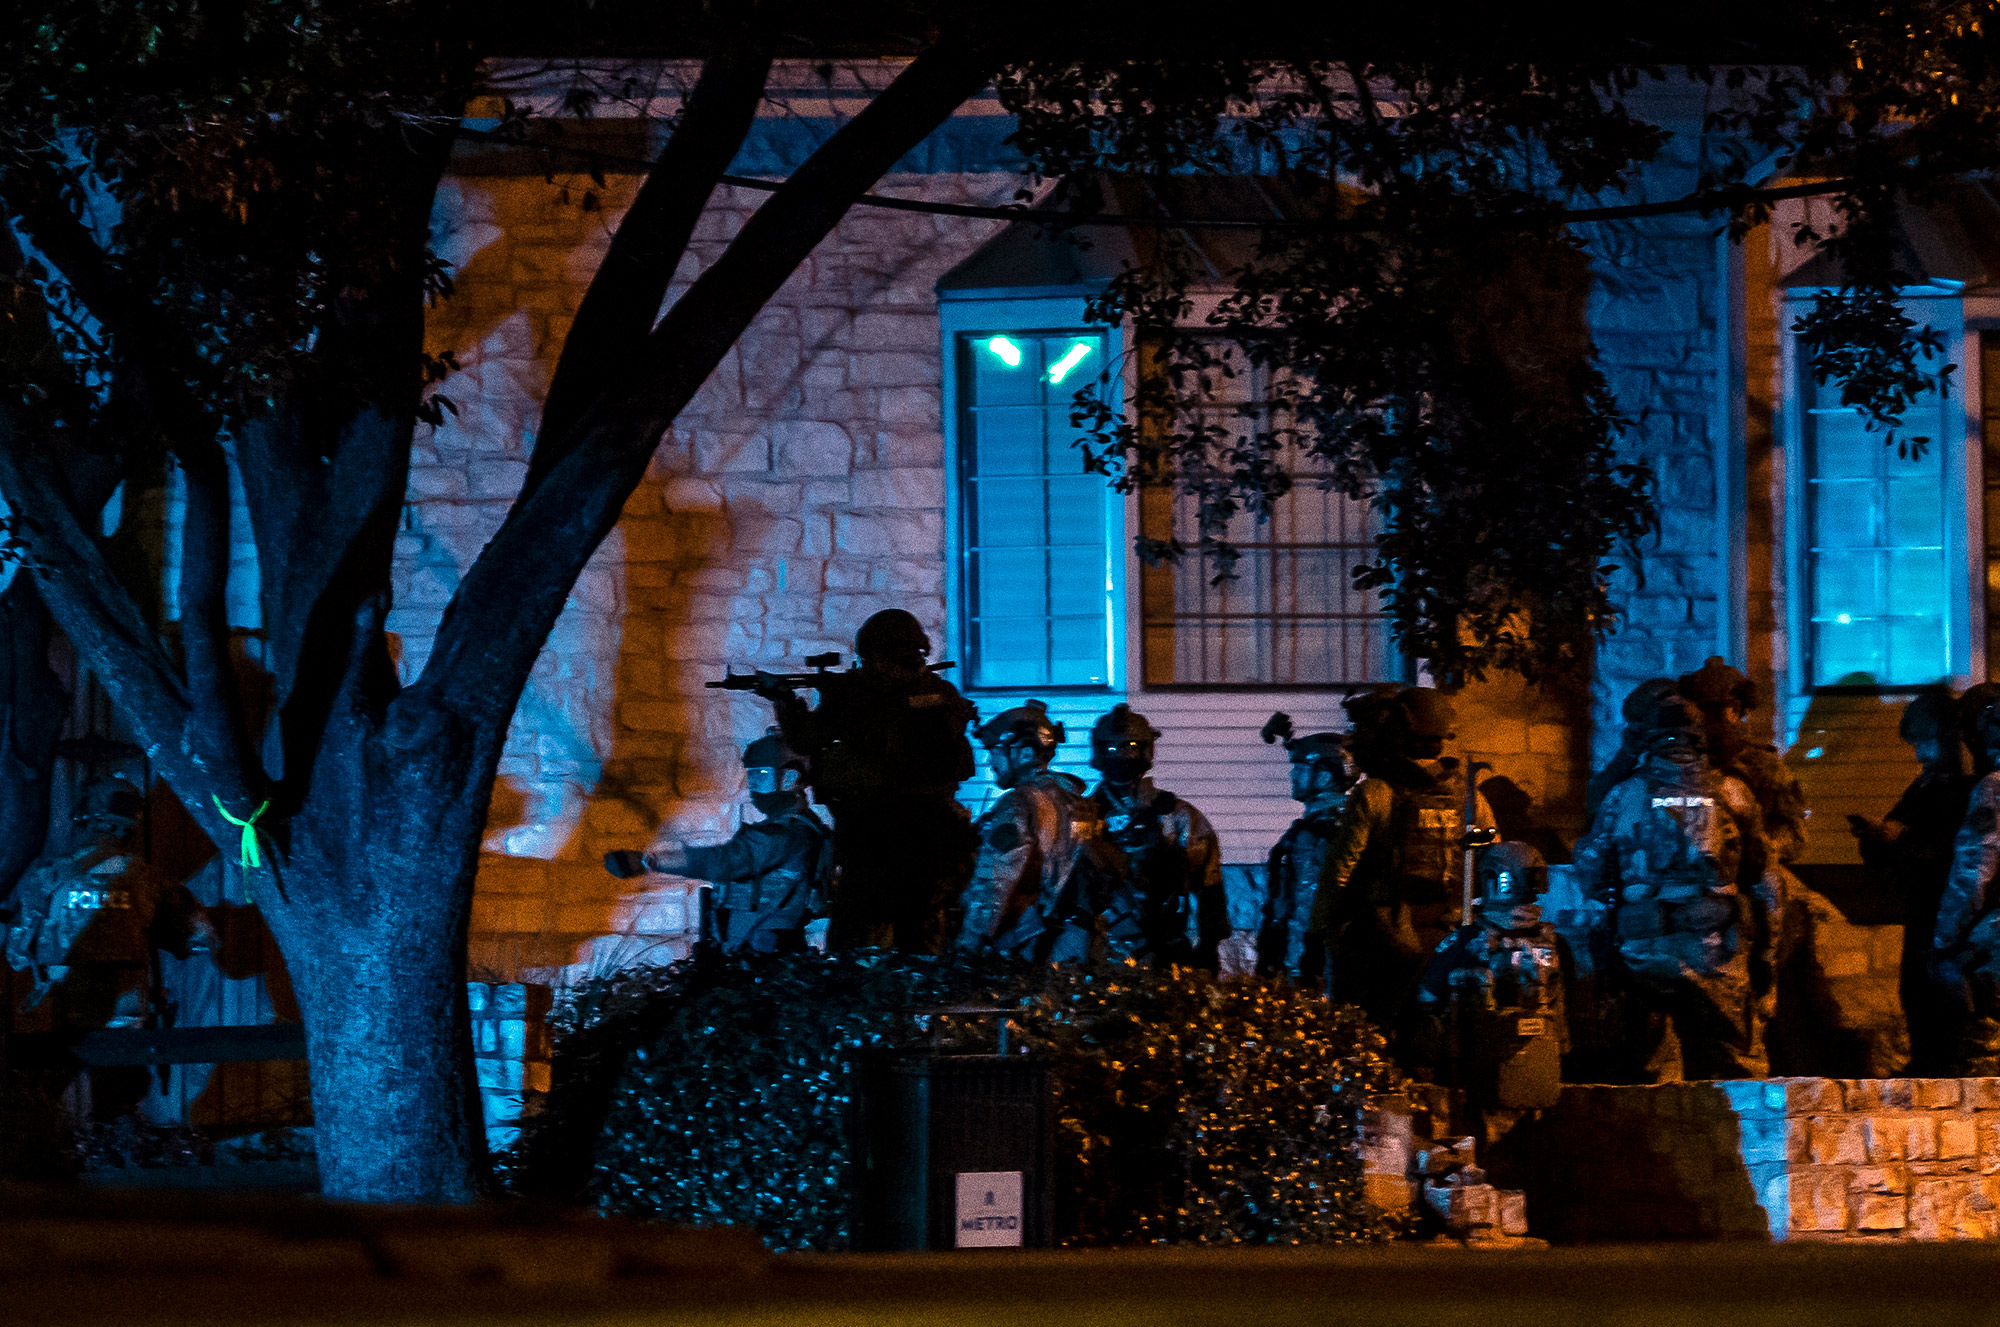 Pediatrician fatally shoots another doctor and himself during hostage situation in Austin, Texas police say